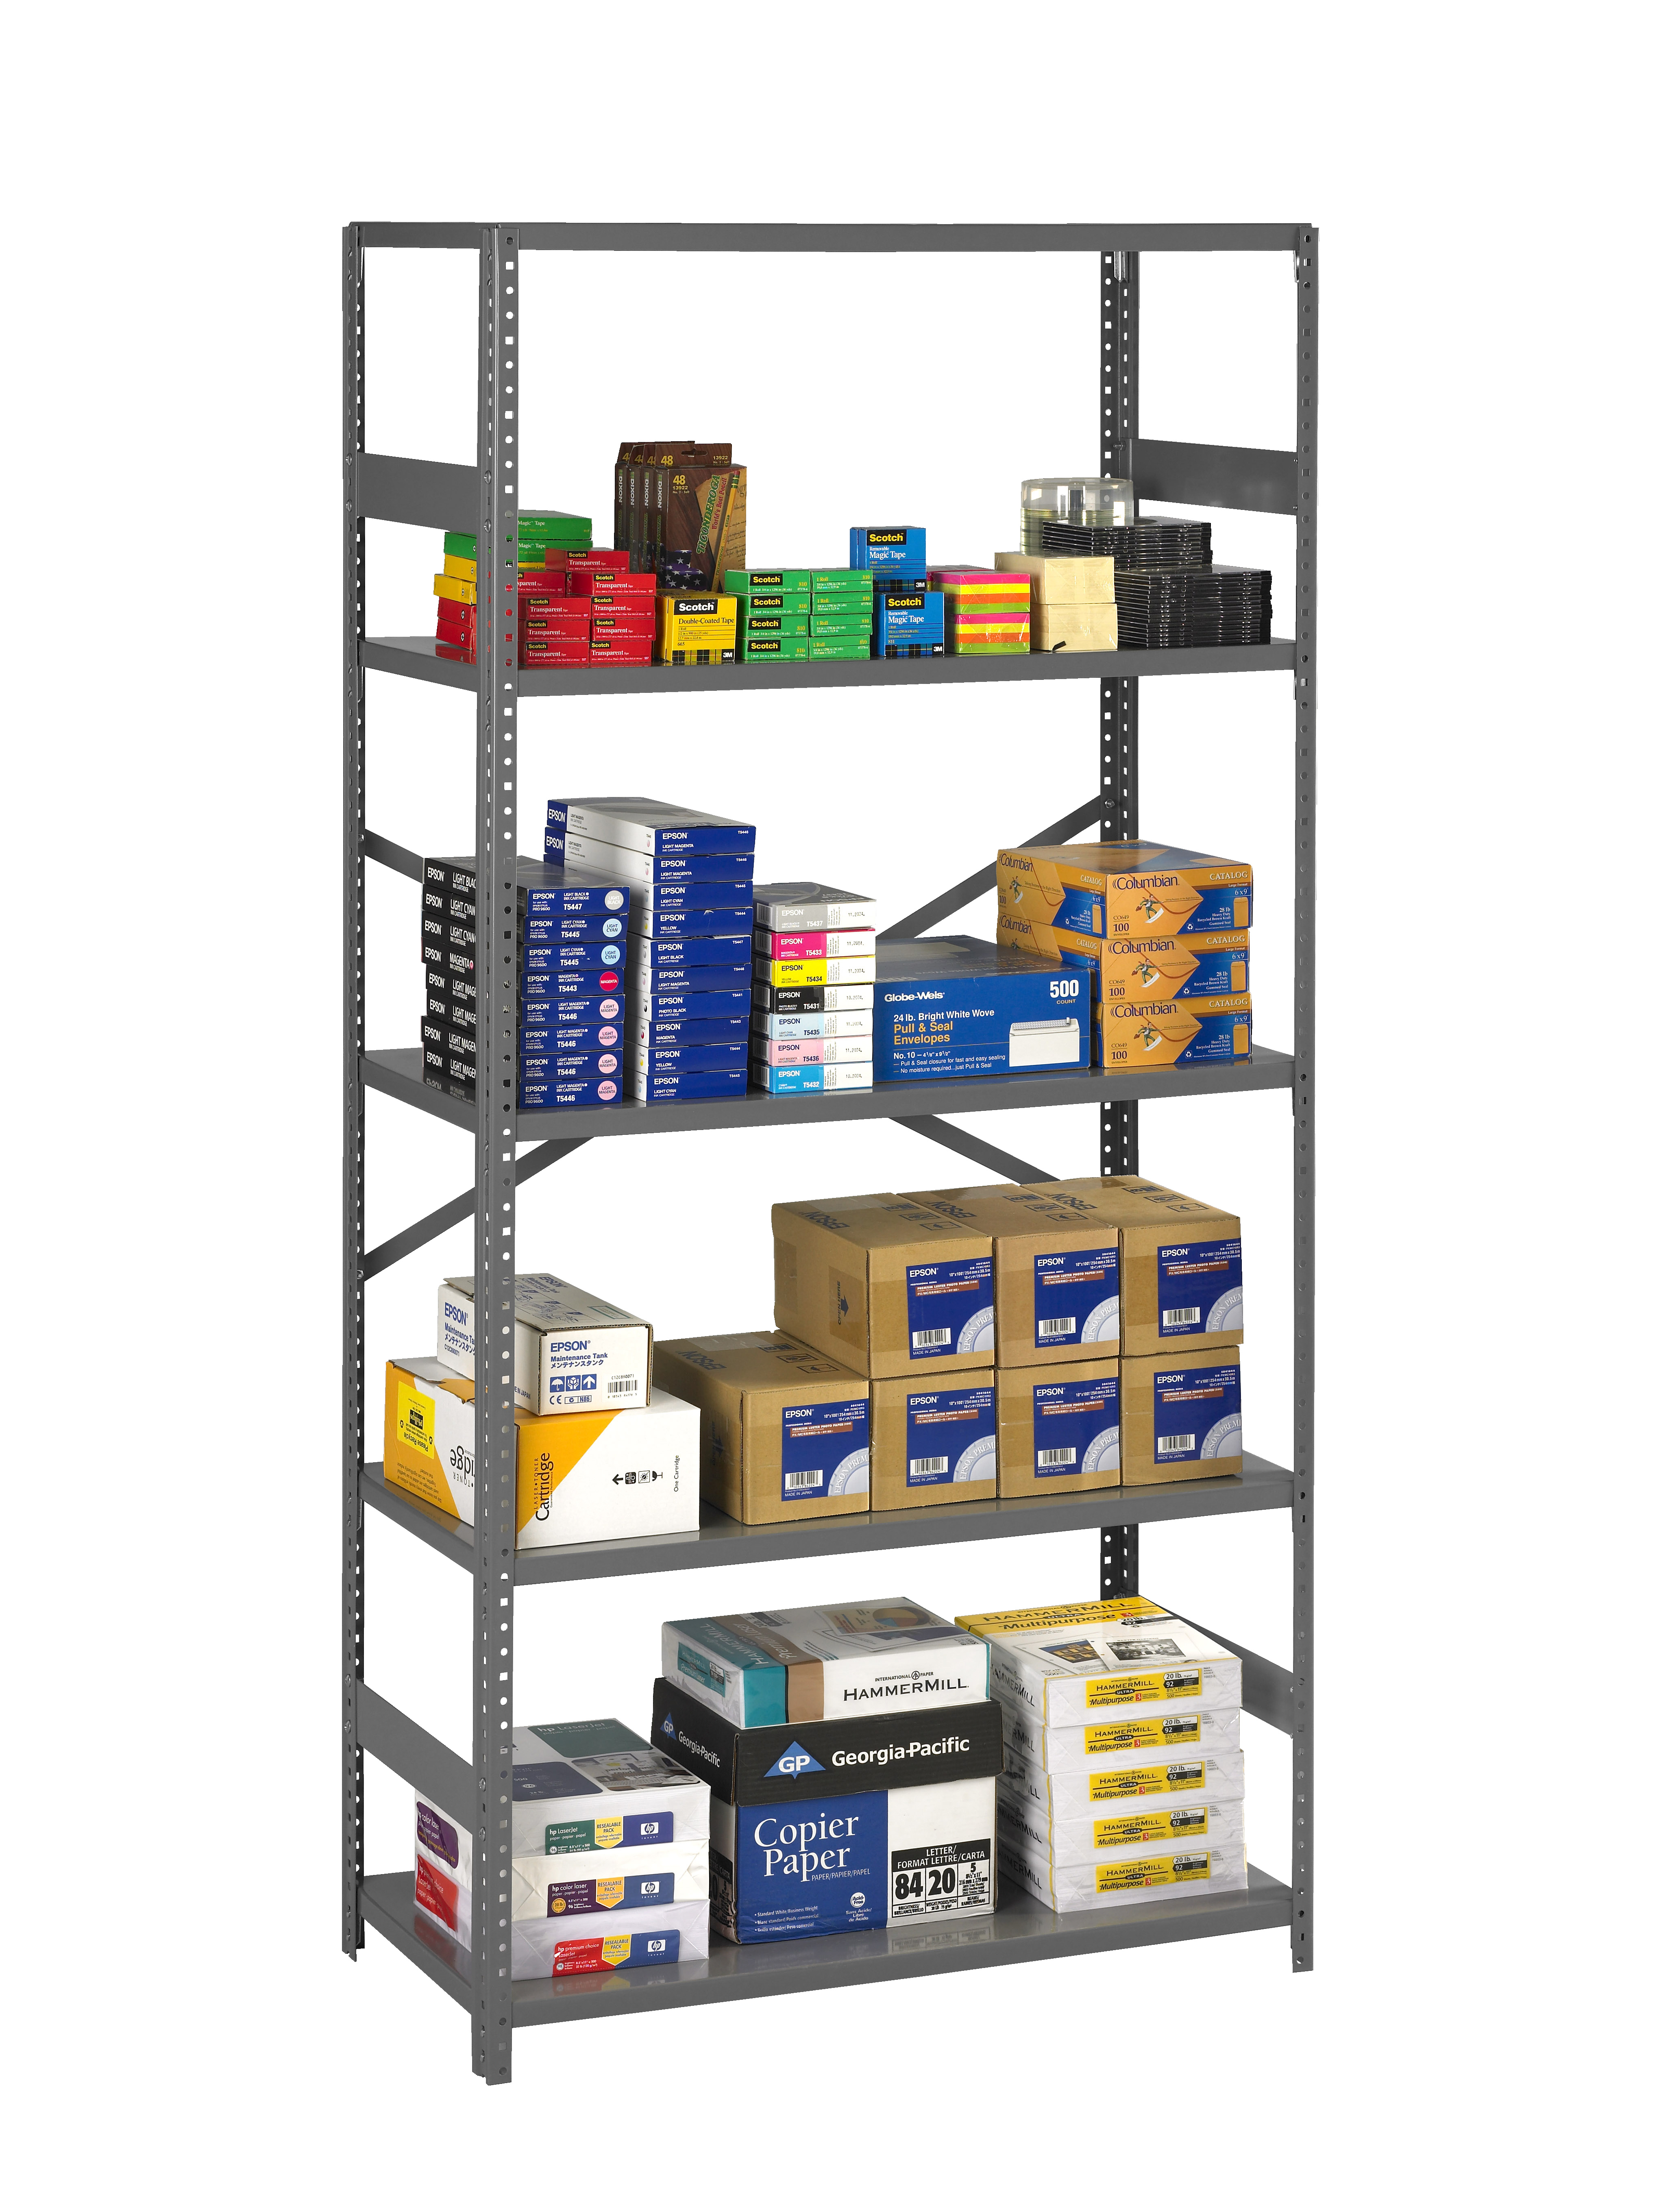 24 inch deep shelves - Download Product Image